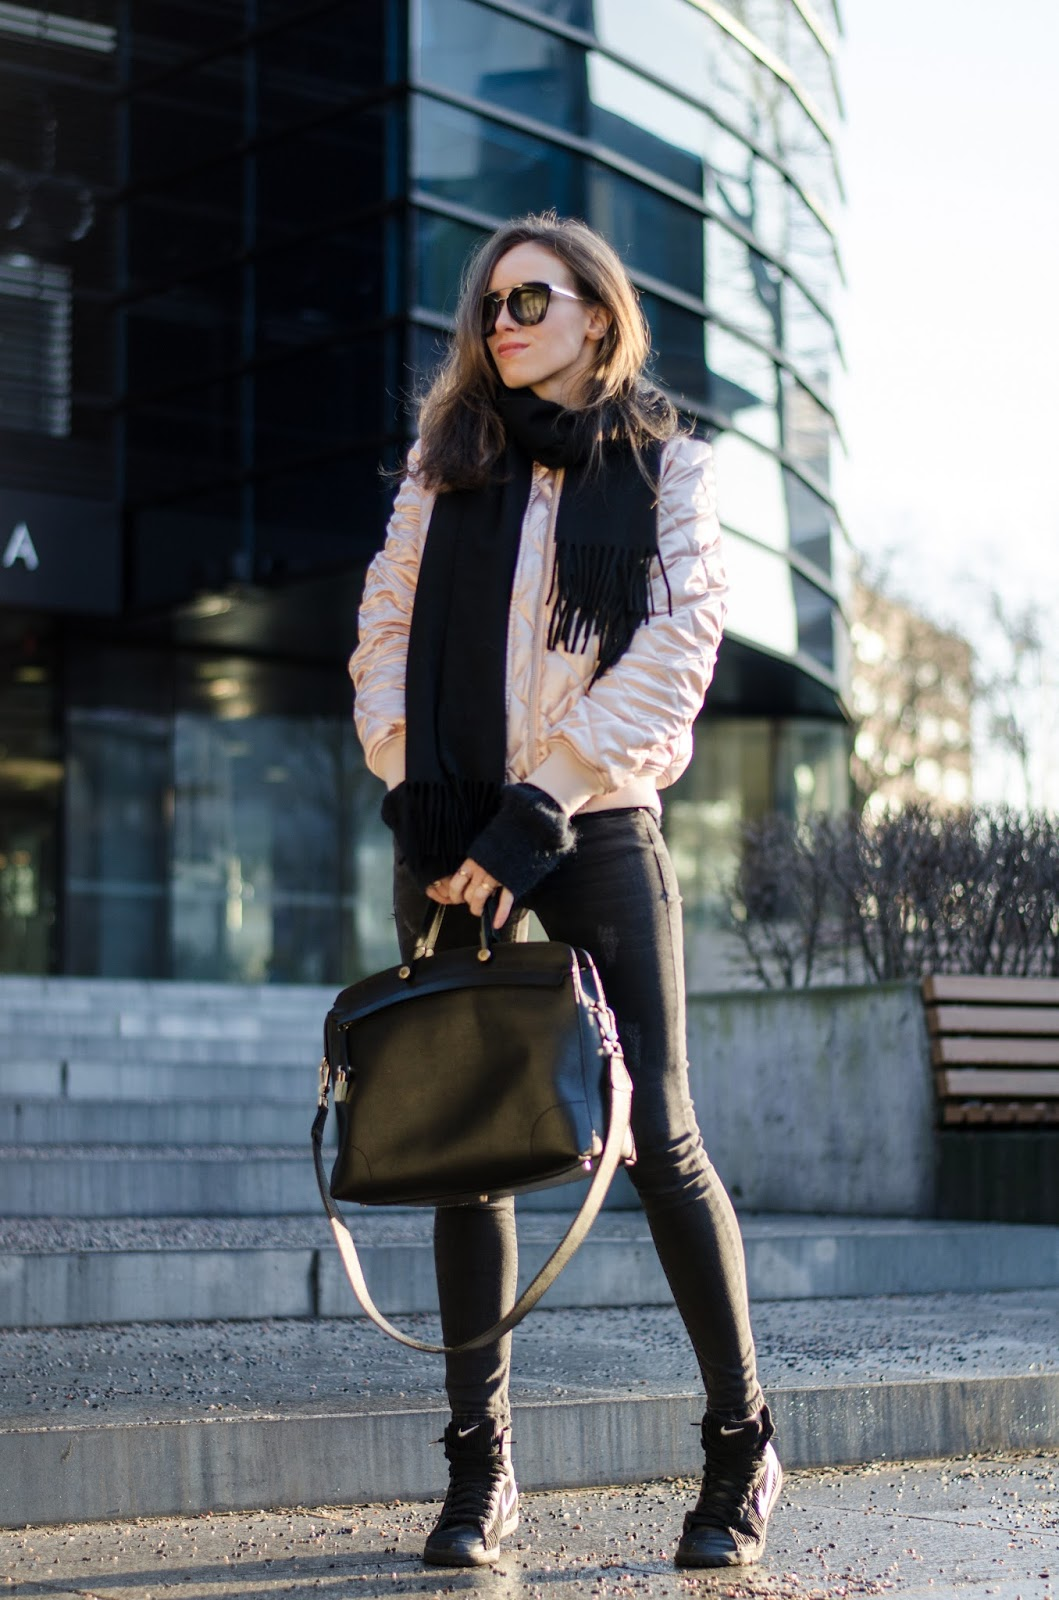 kristjaana mere bomber jacket winter outfit